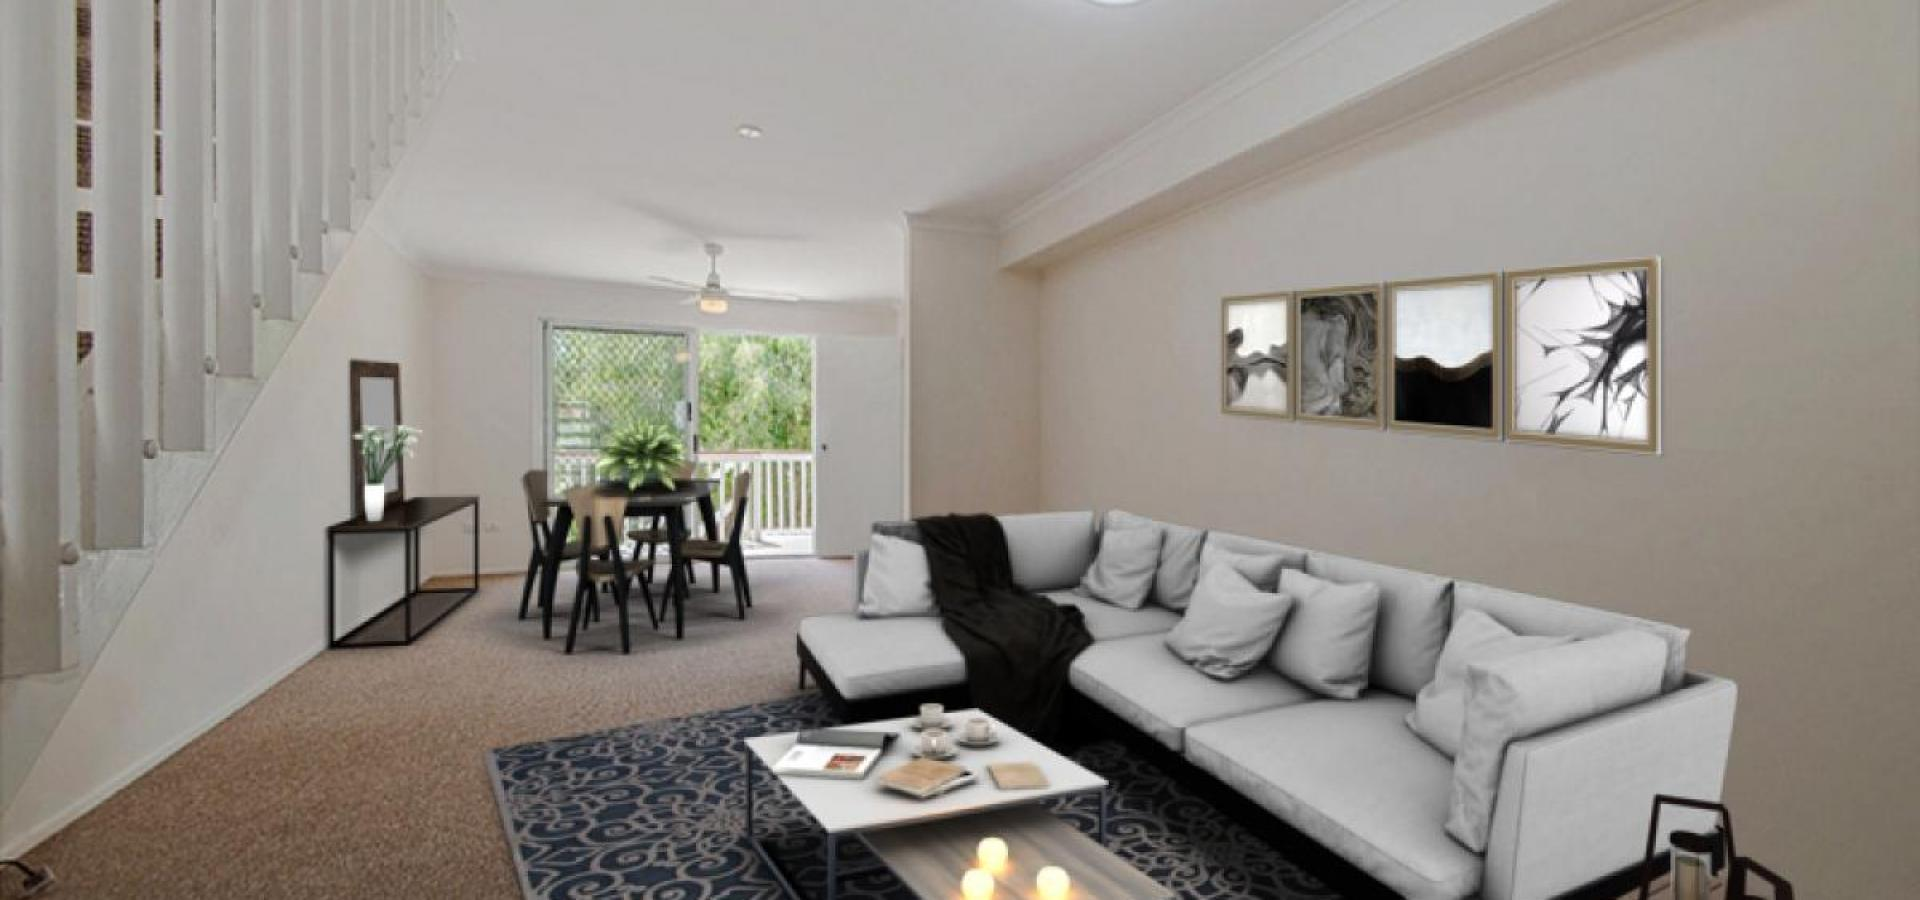 Spacious townhouse, large courtyard, affordable body corporate fees